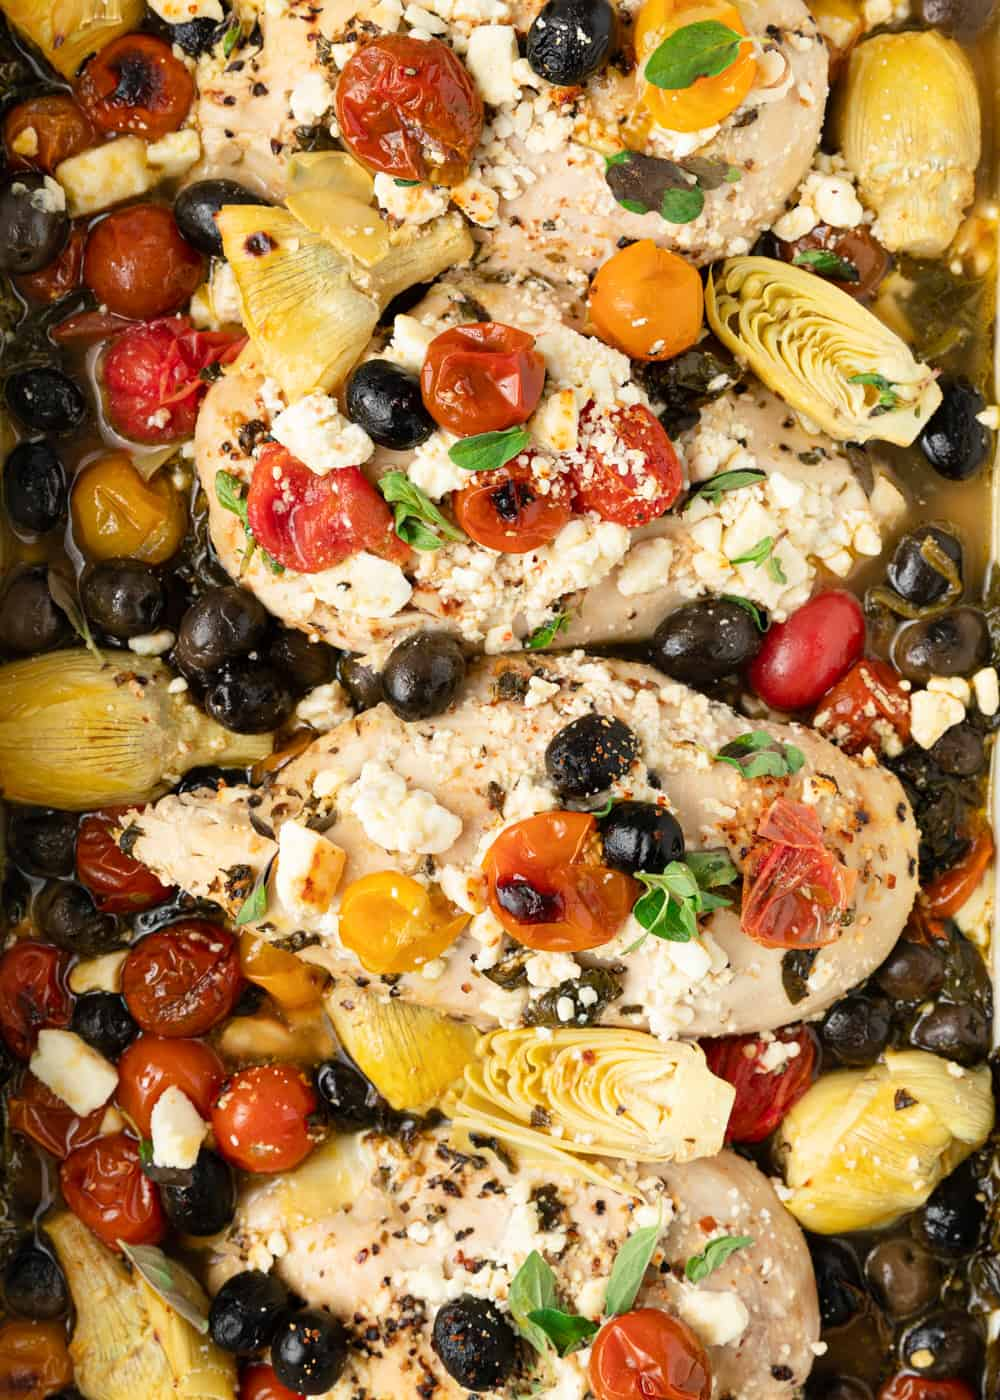 Mediterranean chicken breasts topped with black olives, tomatoes, artichoke hearts and feta cheese